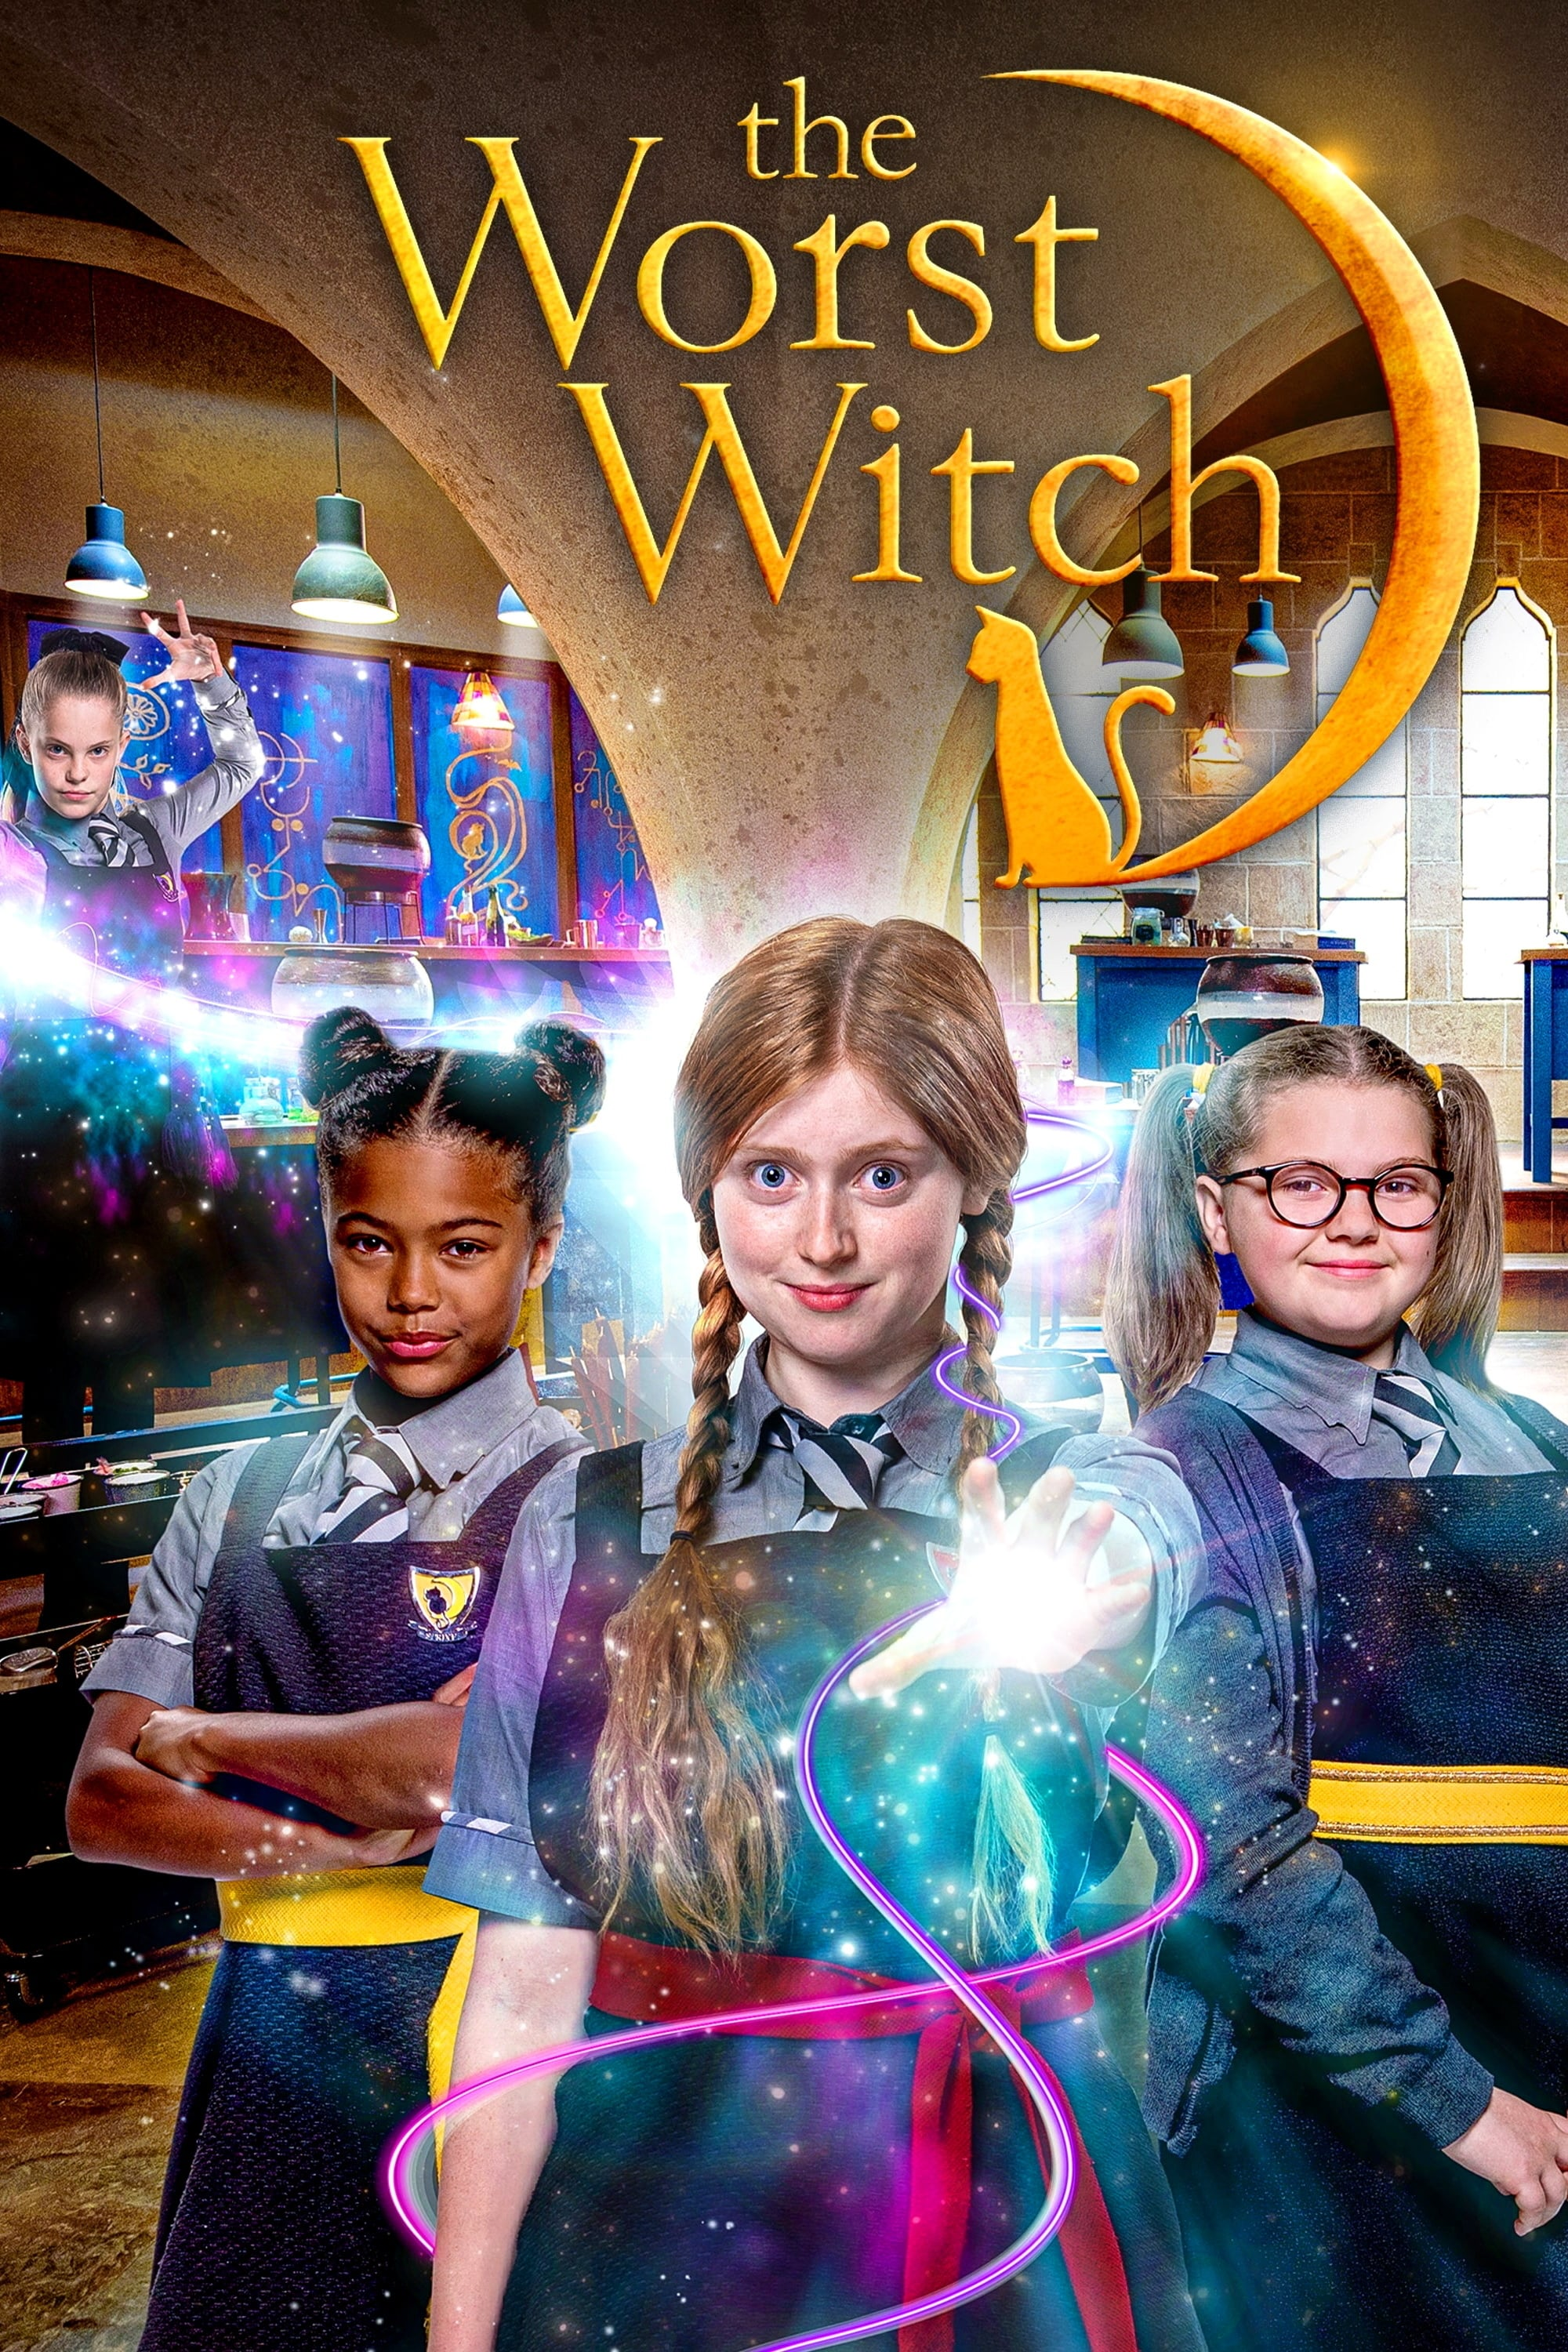 The Worst Witch (2017)' />